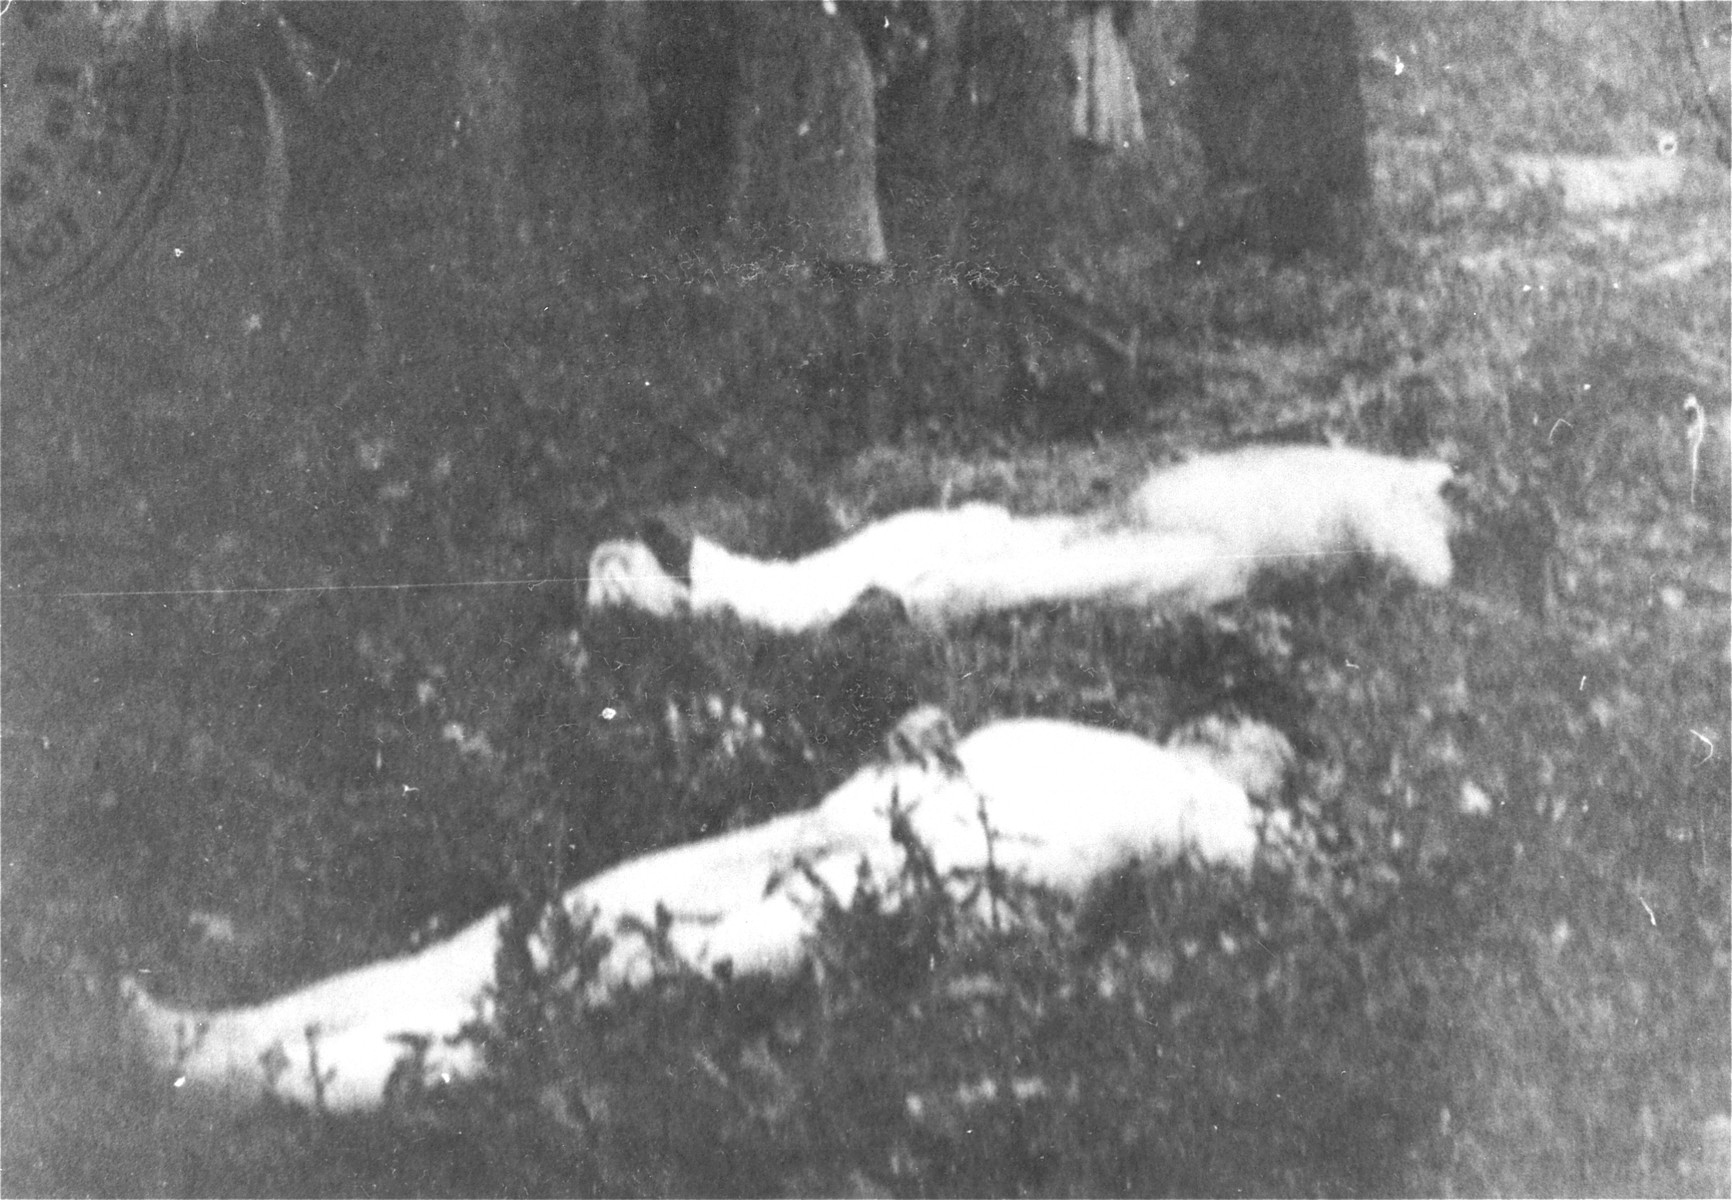 The bodies of Romanian Jews who died on one of two death trains that left Iasi on June 30, 1941.  The first train was bound for Calarasi and the second for Podul Iloaiei.